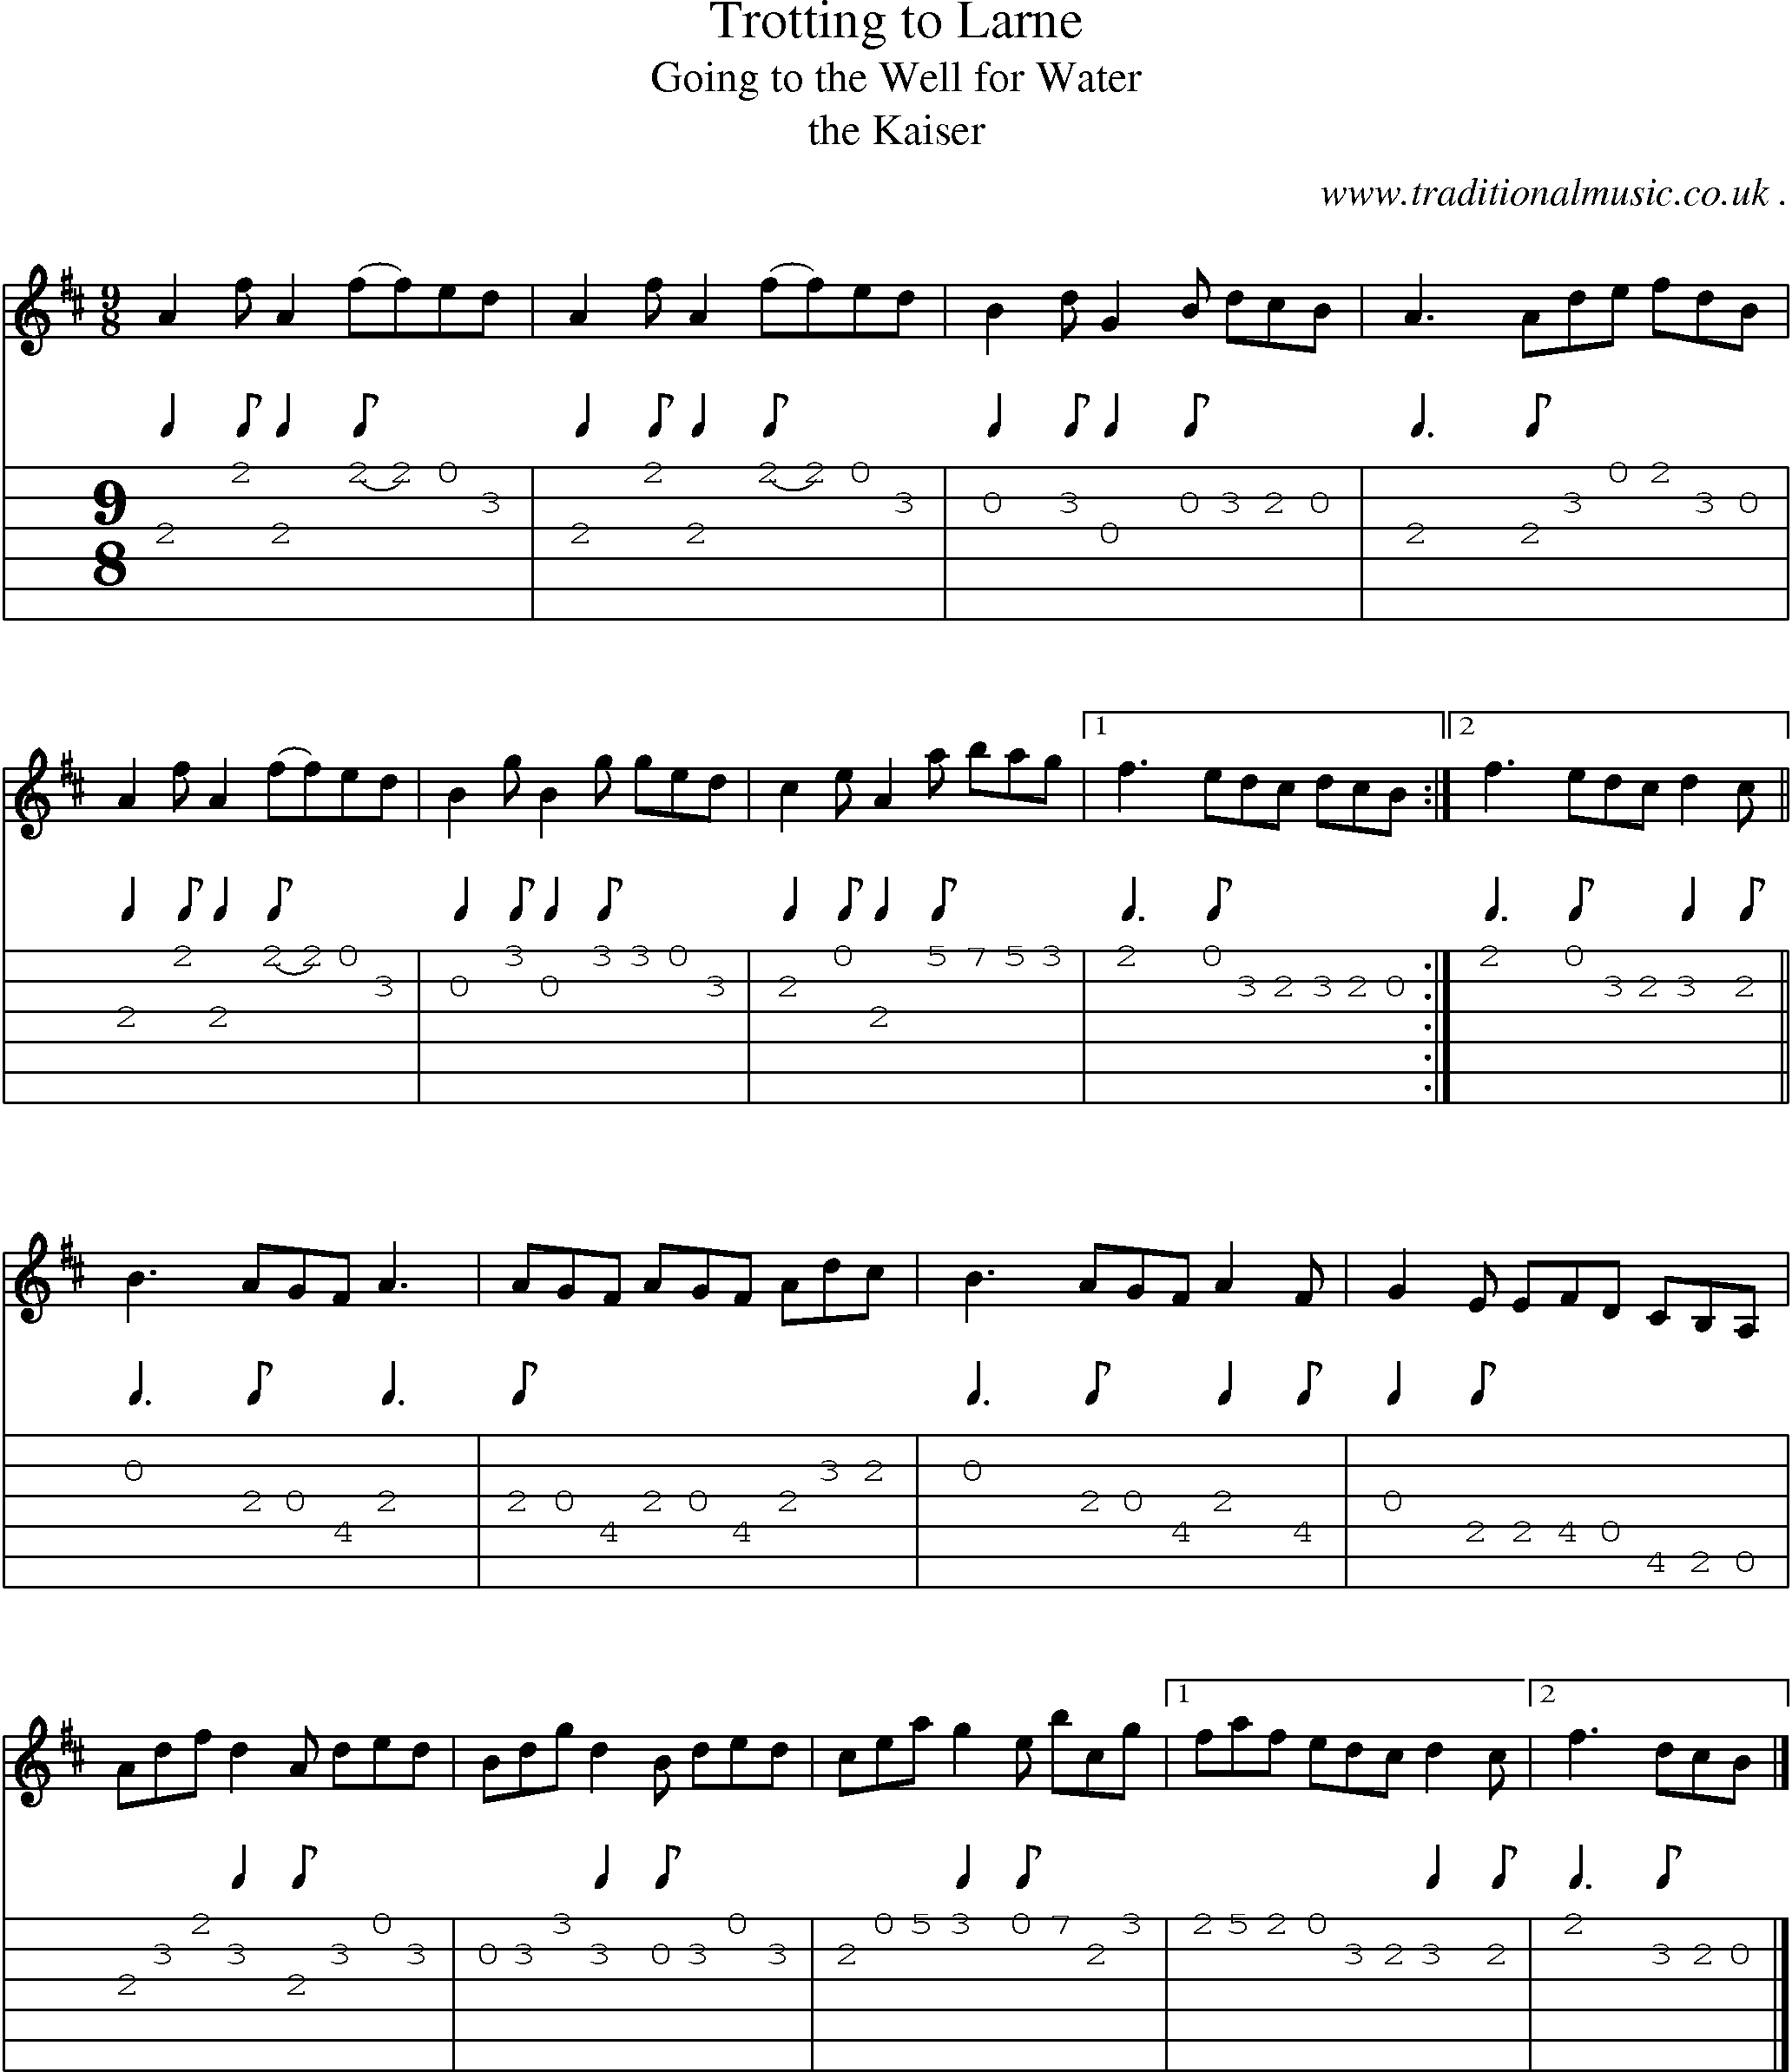 Music Instrument Hindi Songs Guitar Tabs Pdf So give touches to your song when needed and give at a proper place. music instrument blogger